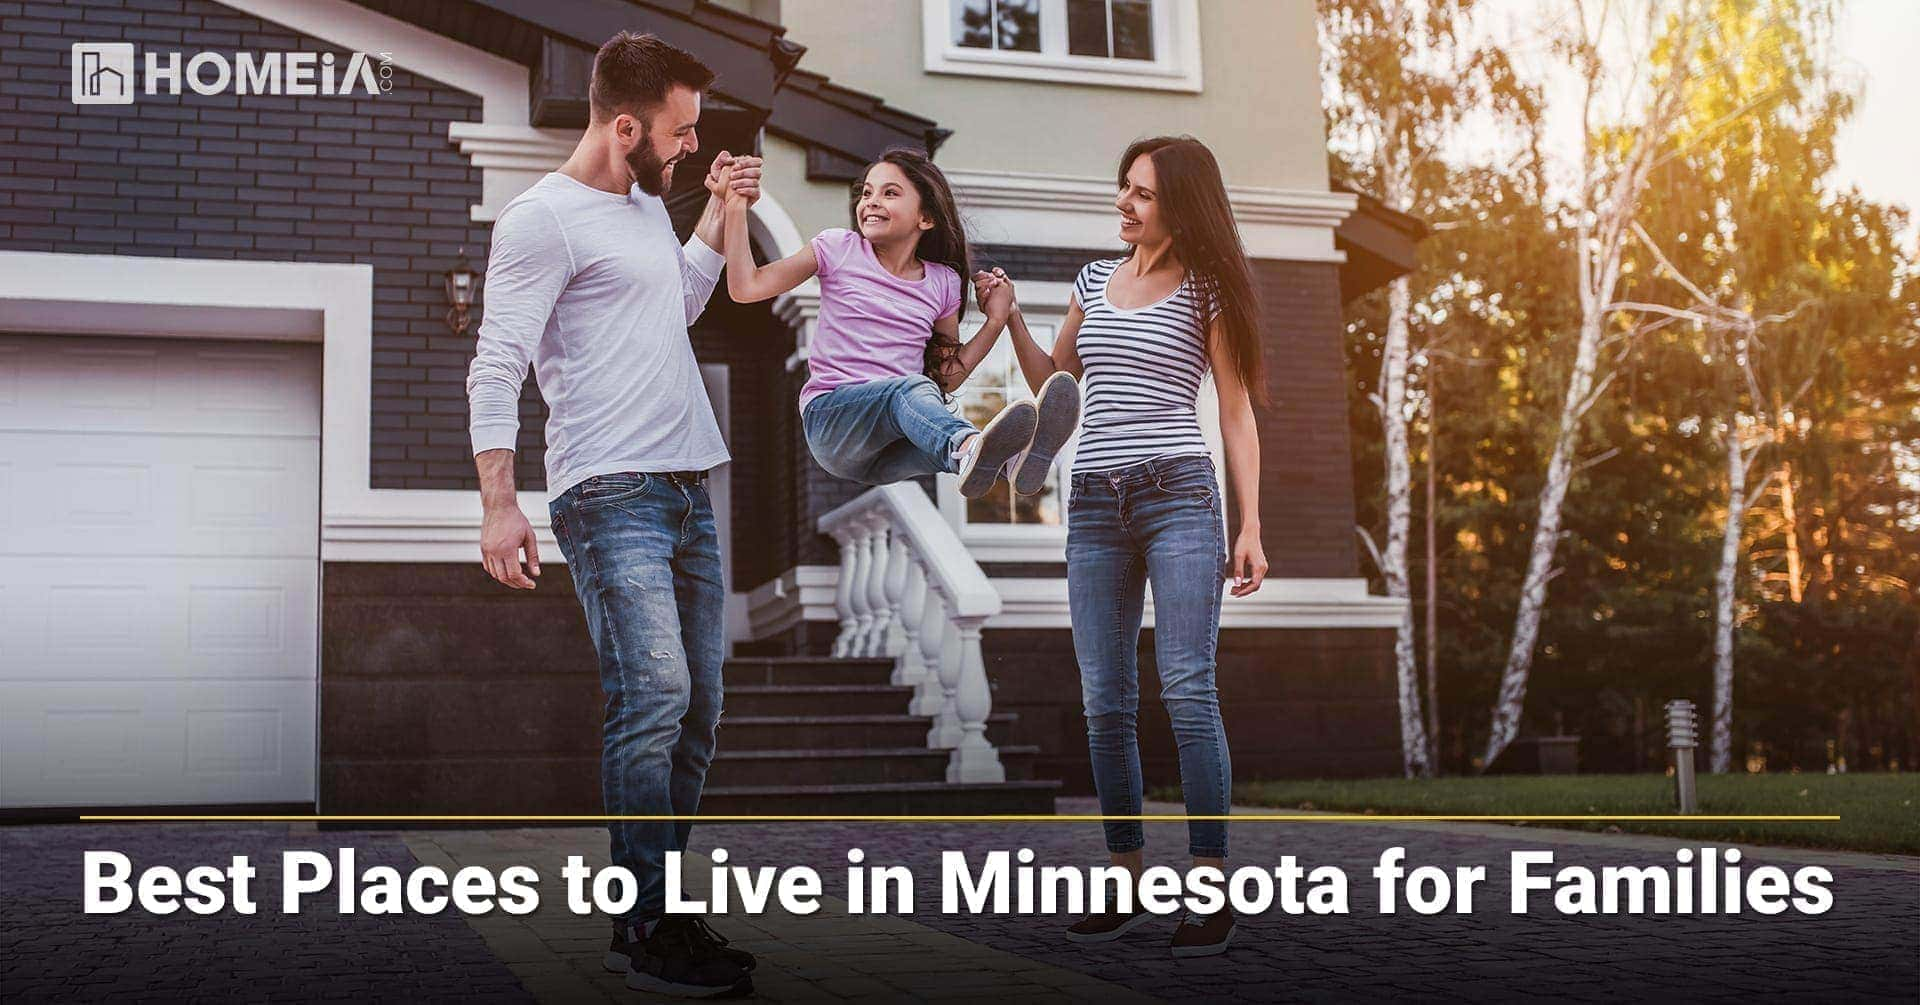 Best Places to Live in Minnesota for Families